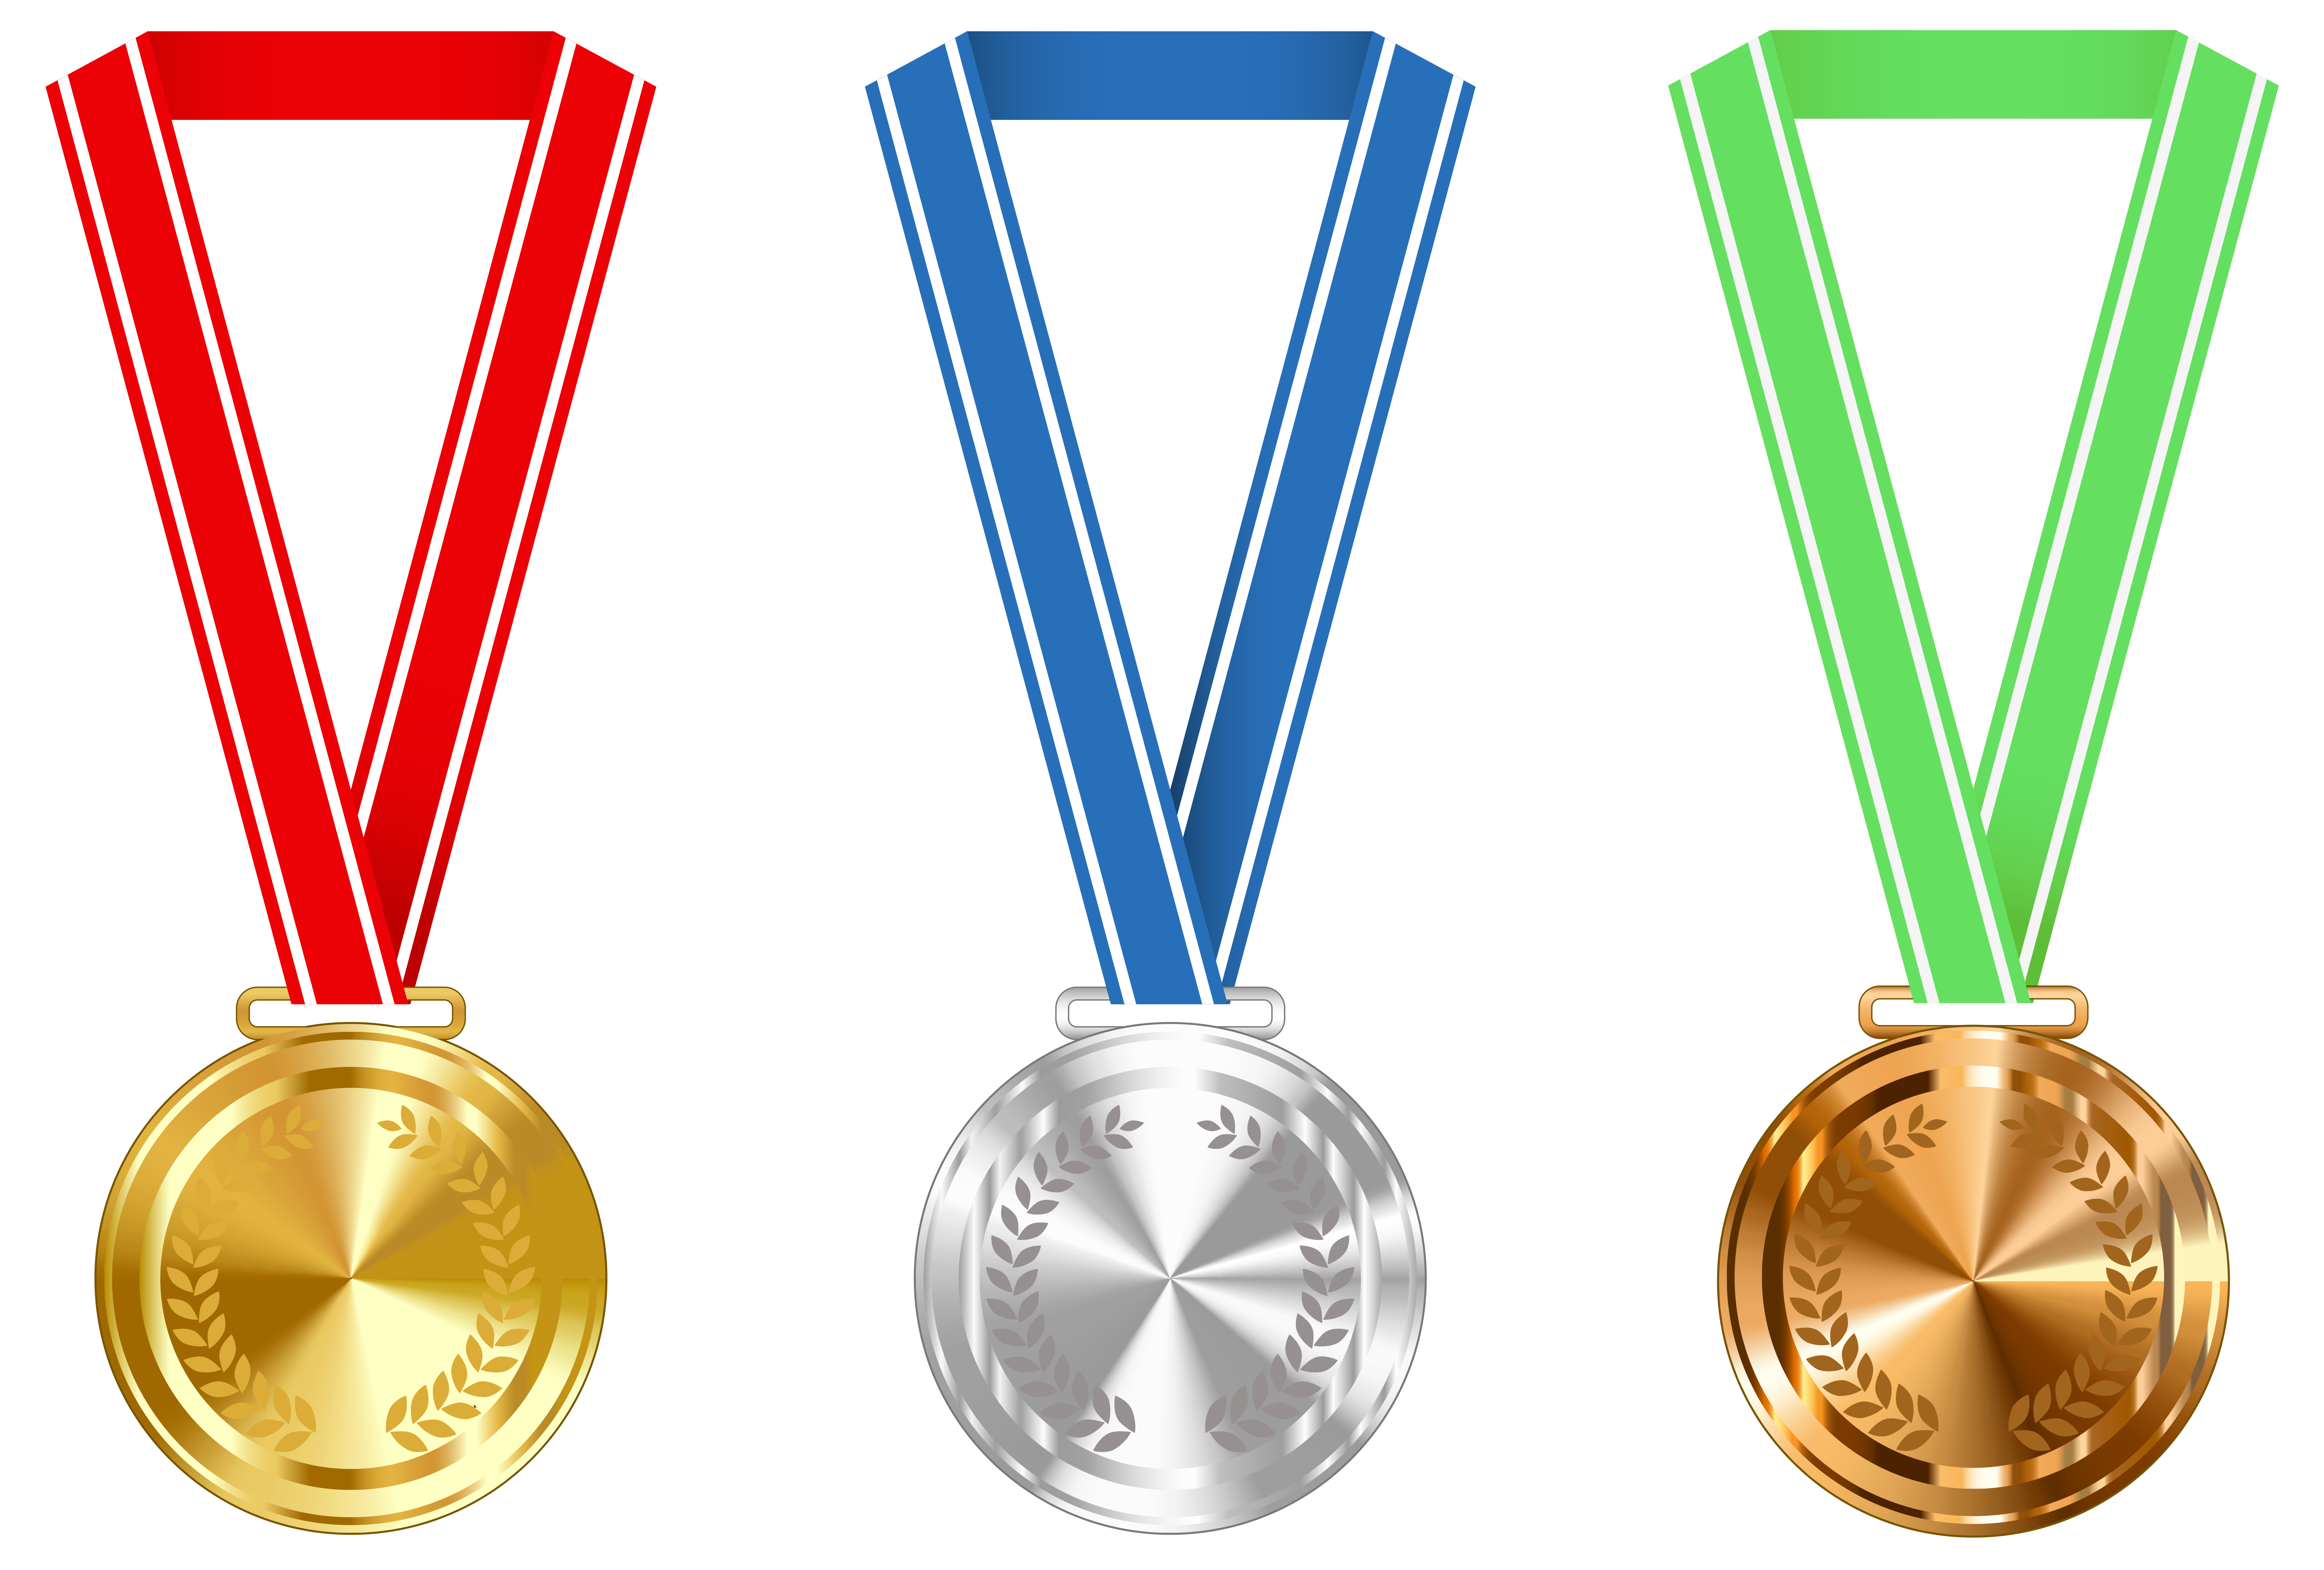 Medal clipart school medal. Gold silver and bronze